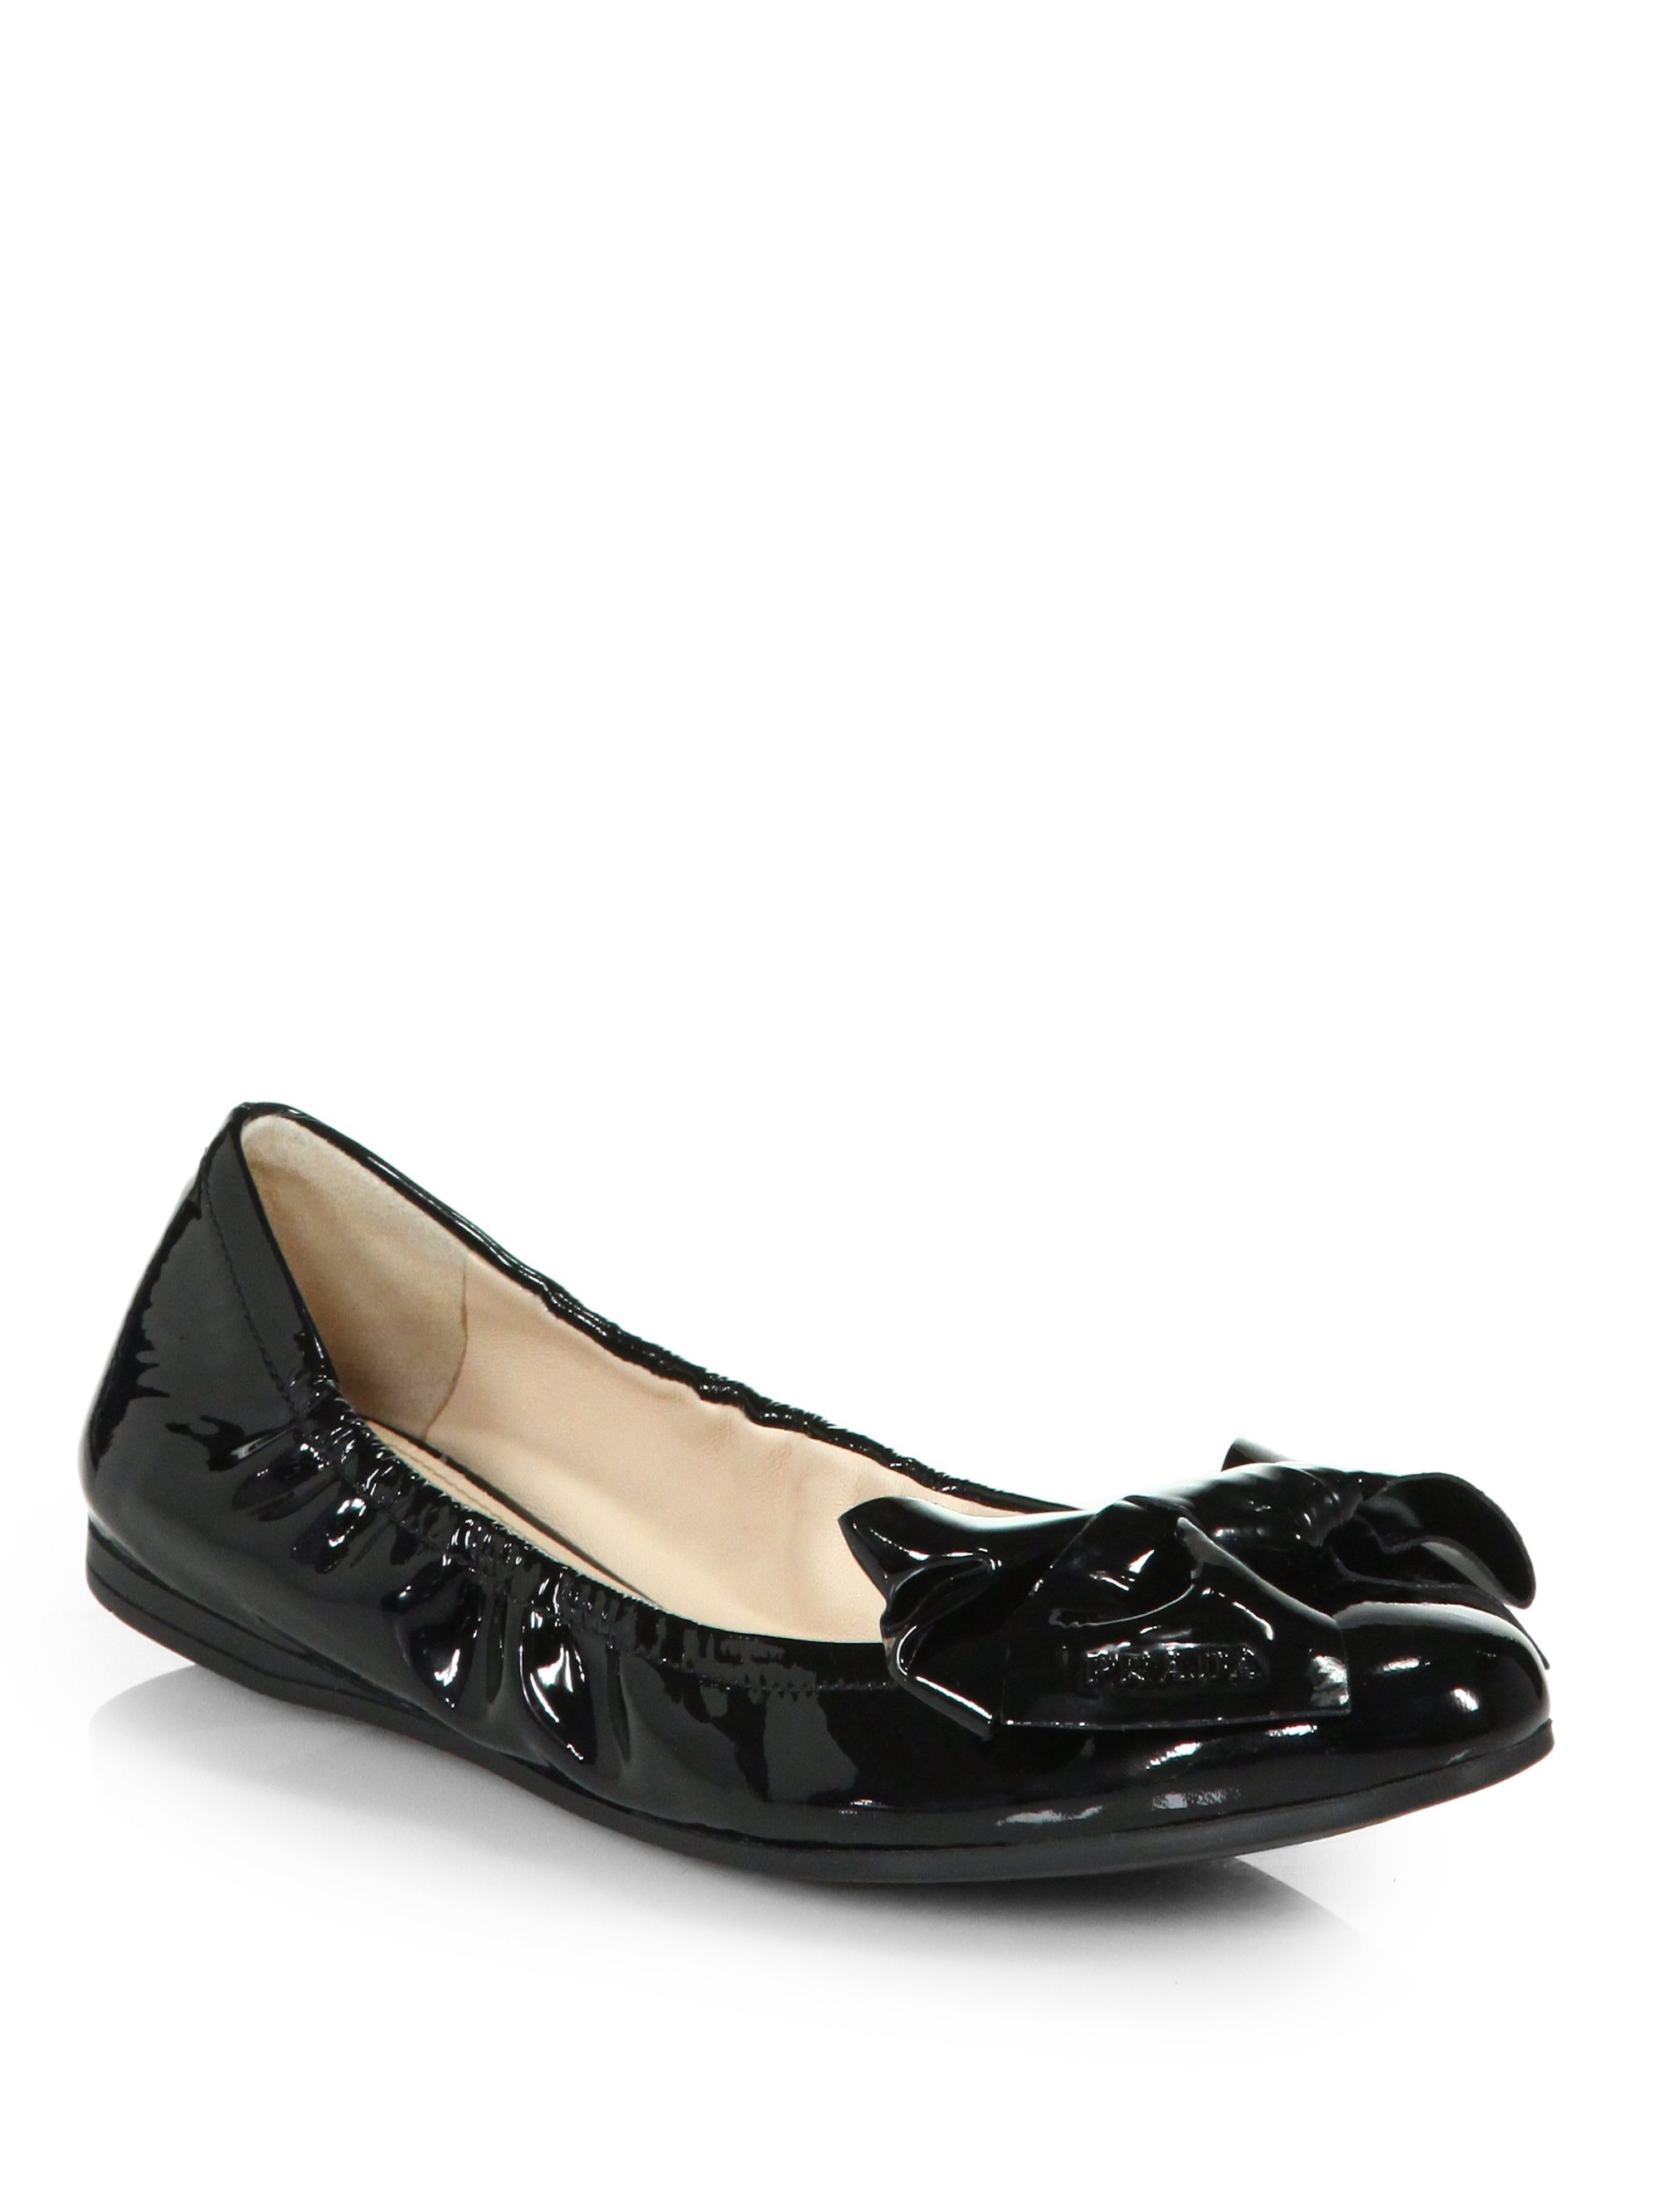 How To Get The Shine Back On Patent Leather Shoes